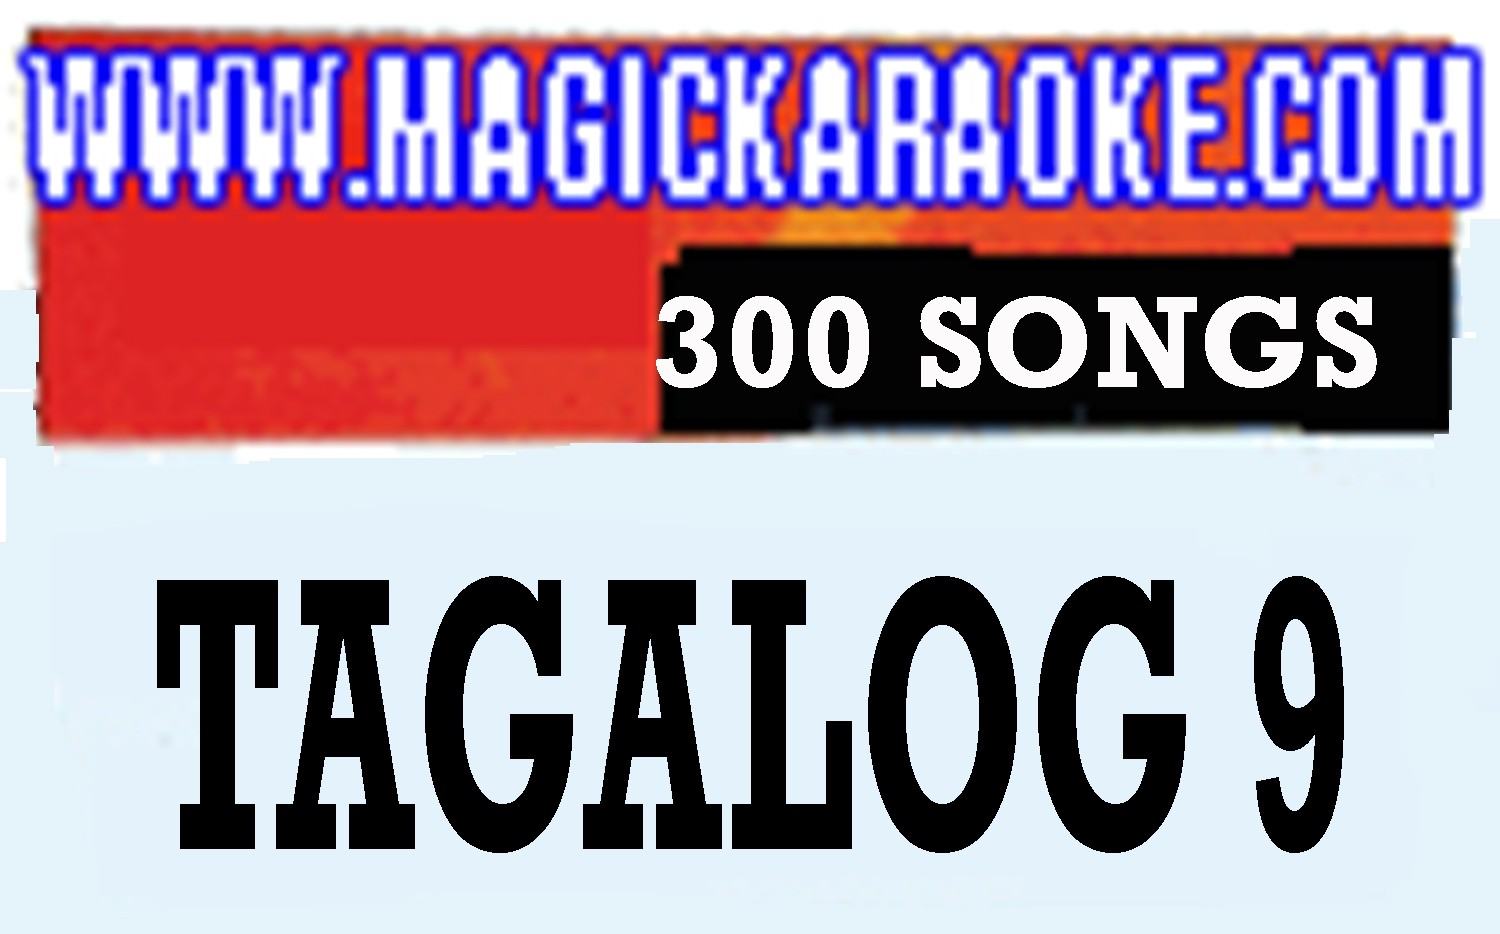 Magic Sing Tagalog 9 - Make an Offer and $ave More